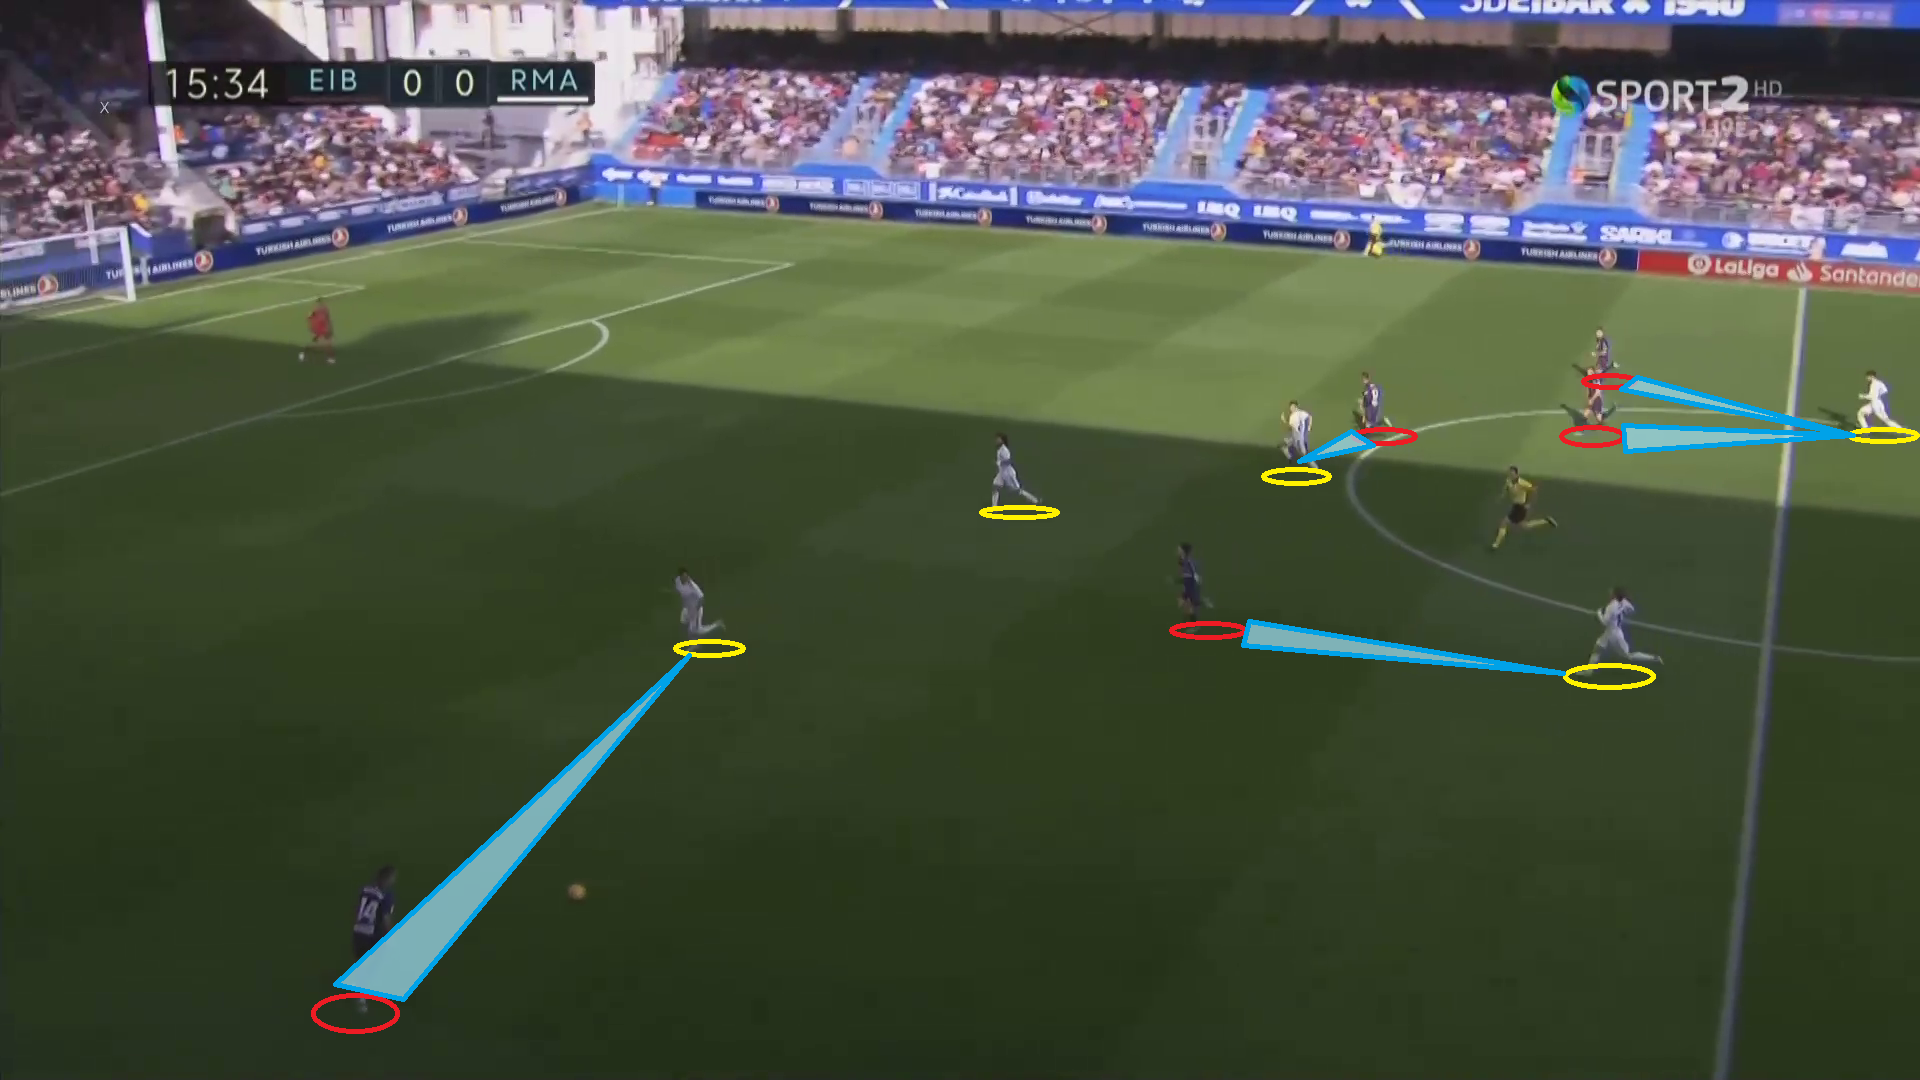 Real-Madrid Eibar La Liga Tactical Analysis Statistics